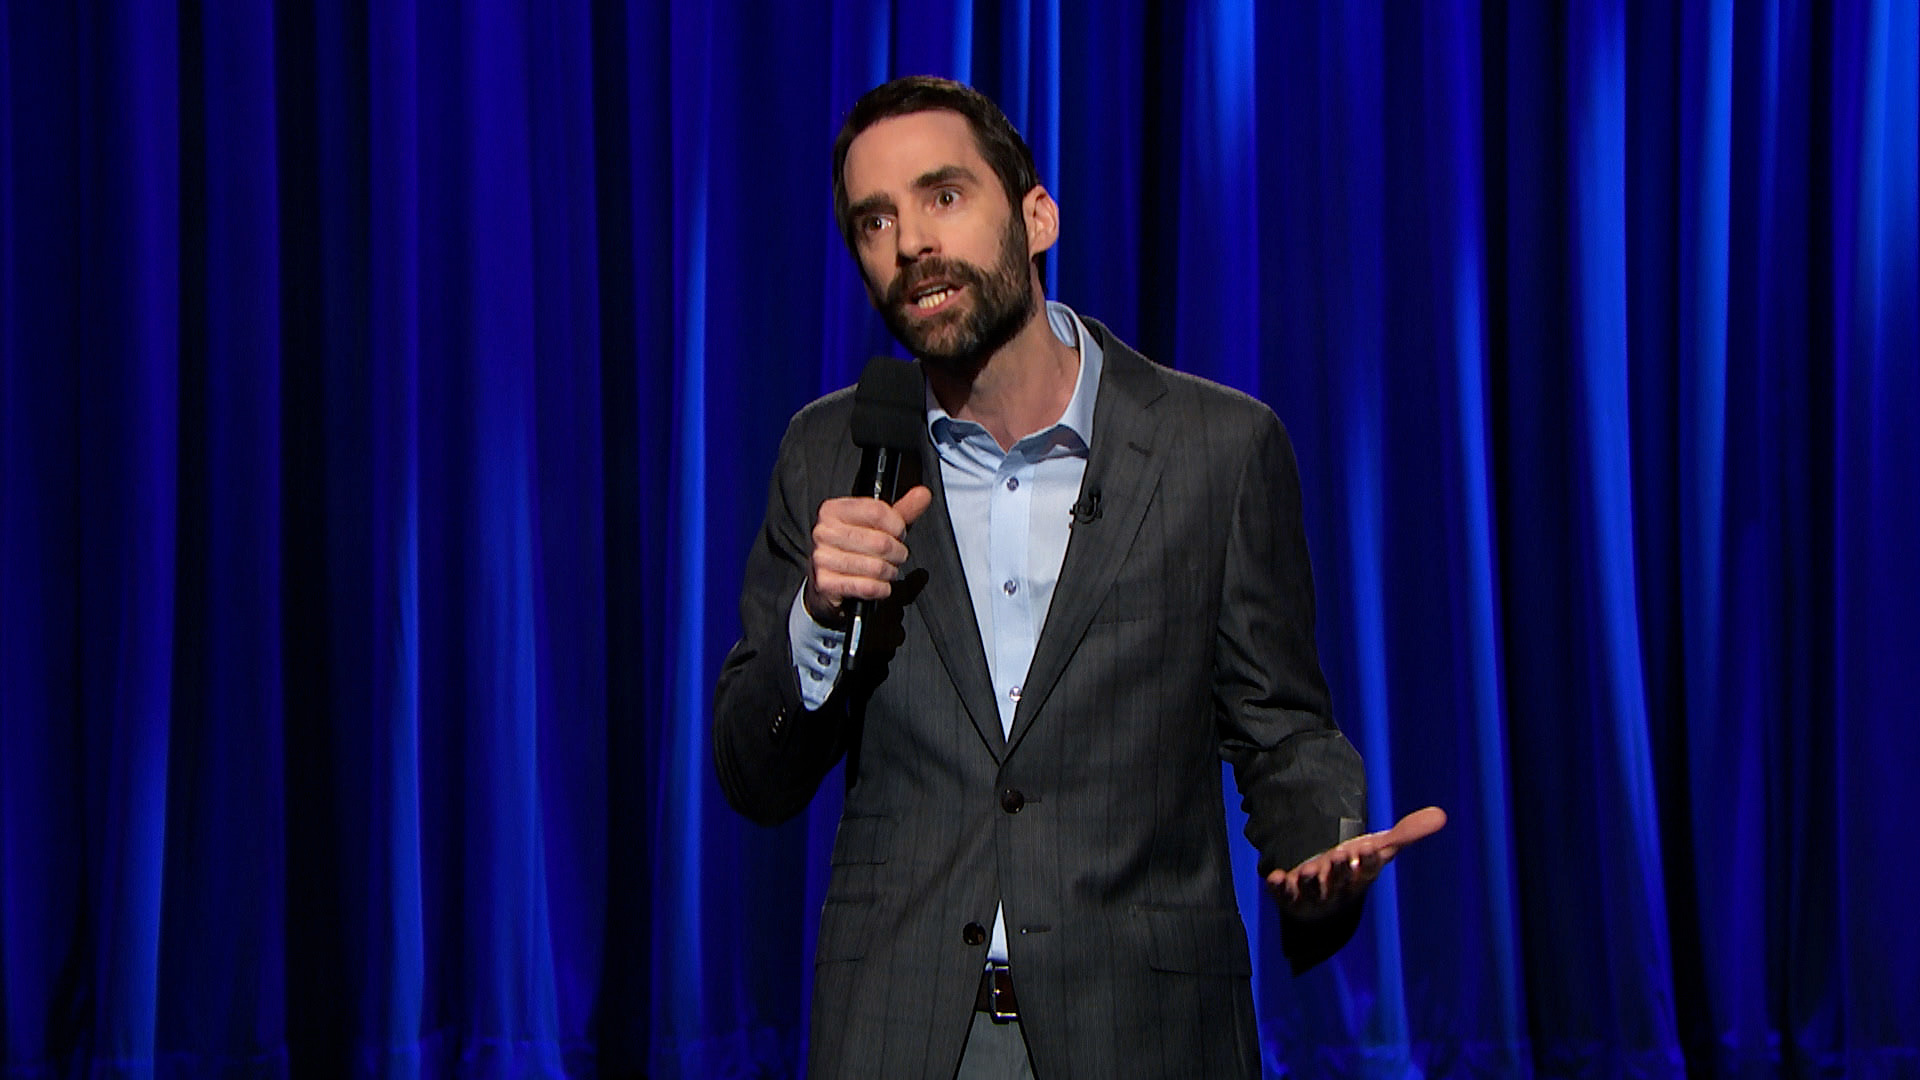 Phil Hanley on Late Night with Seth Meyers